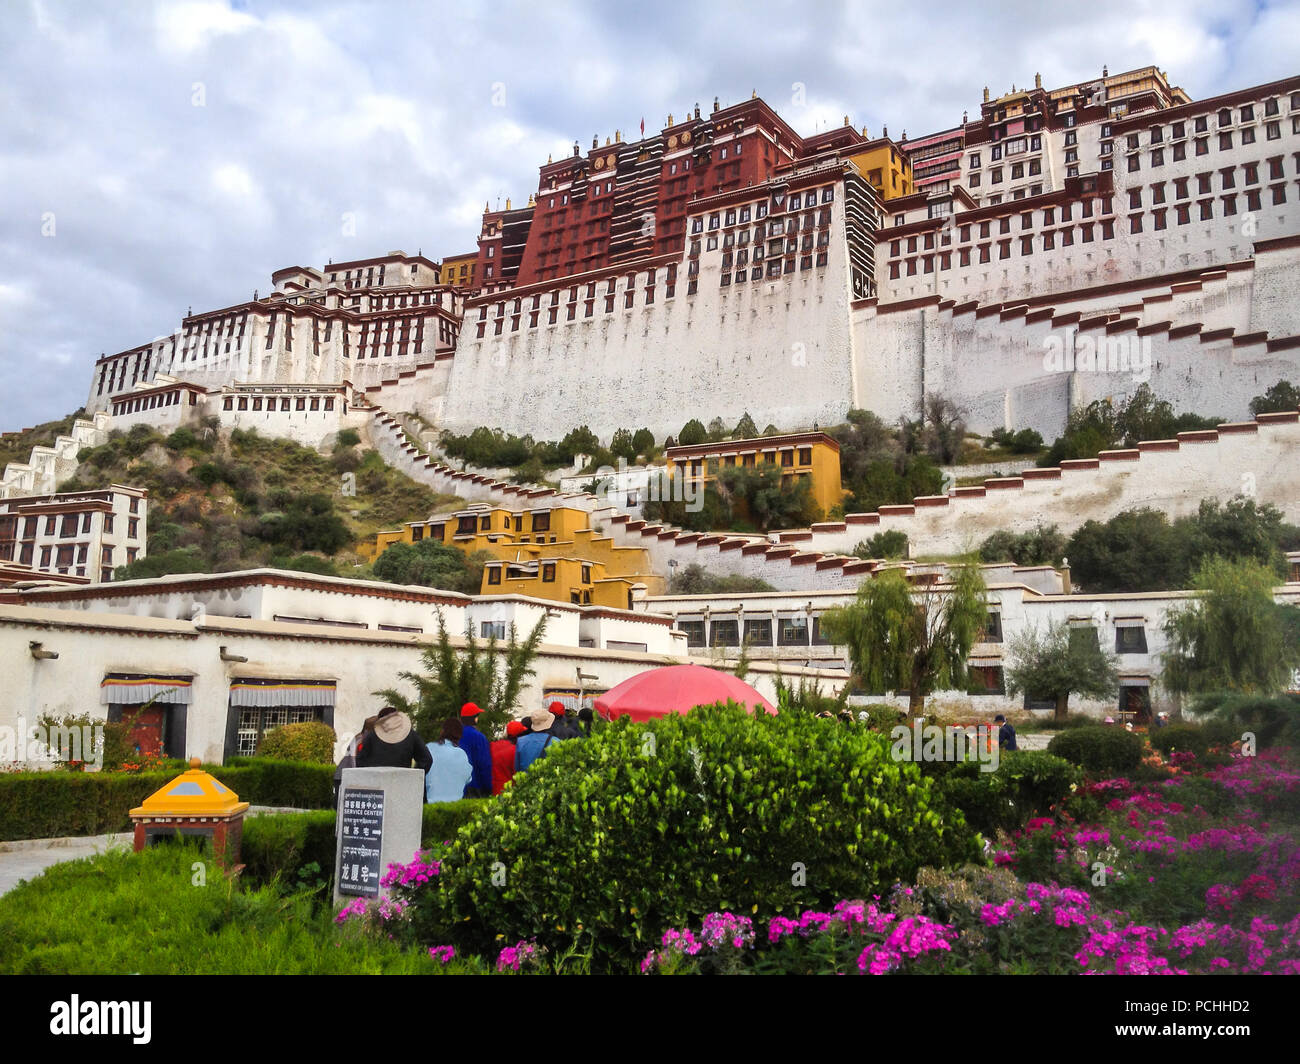 Potala Palace Front View with Garden in Lhasa, Tibet Autonomous Region. Former Dalai Lama residence, now is a museum and World Heritage Site. - Stock Image